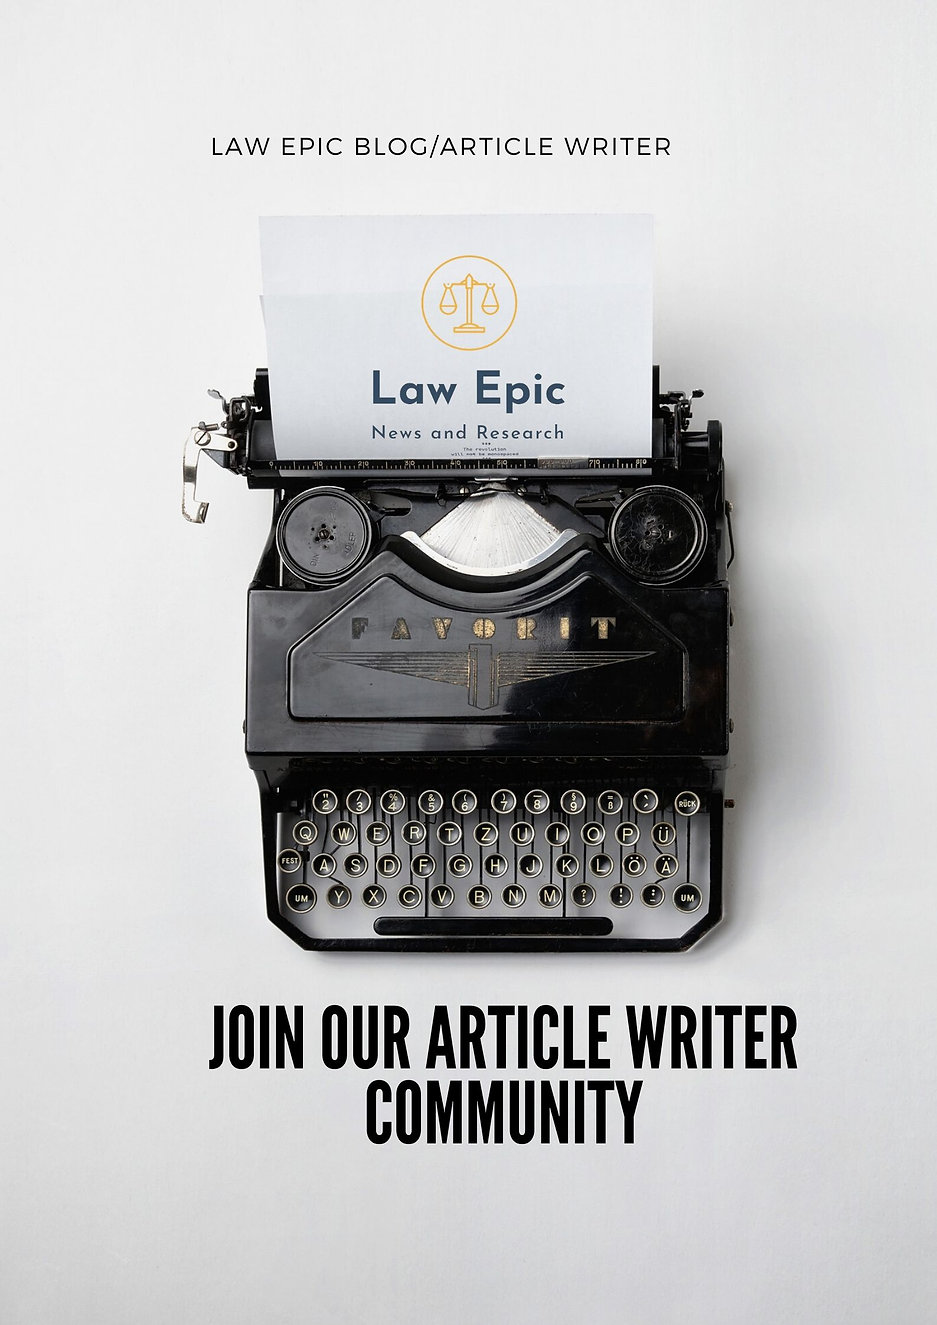 Law epic blog_article writer.jpg